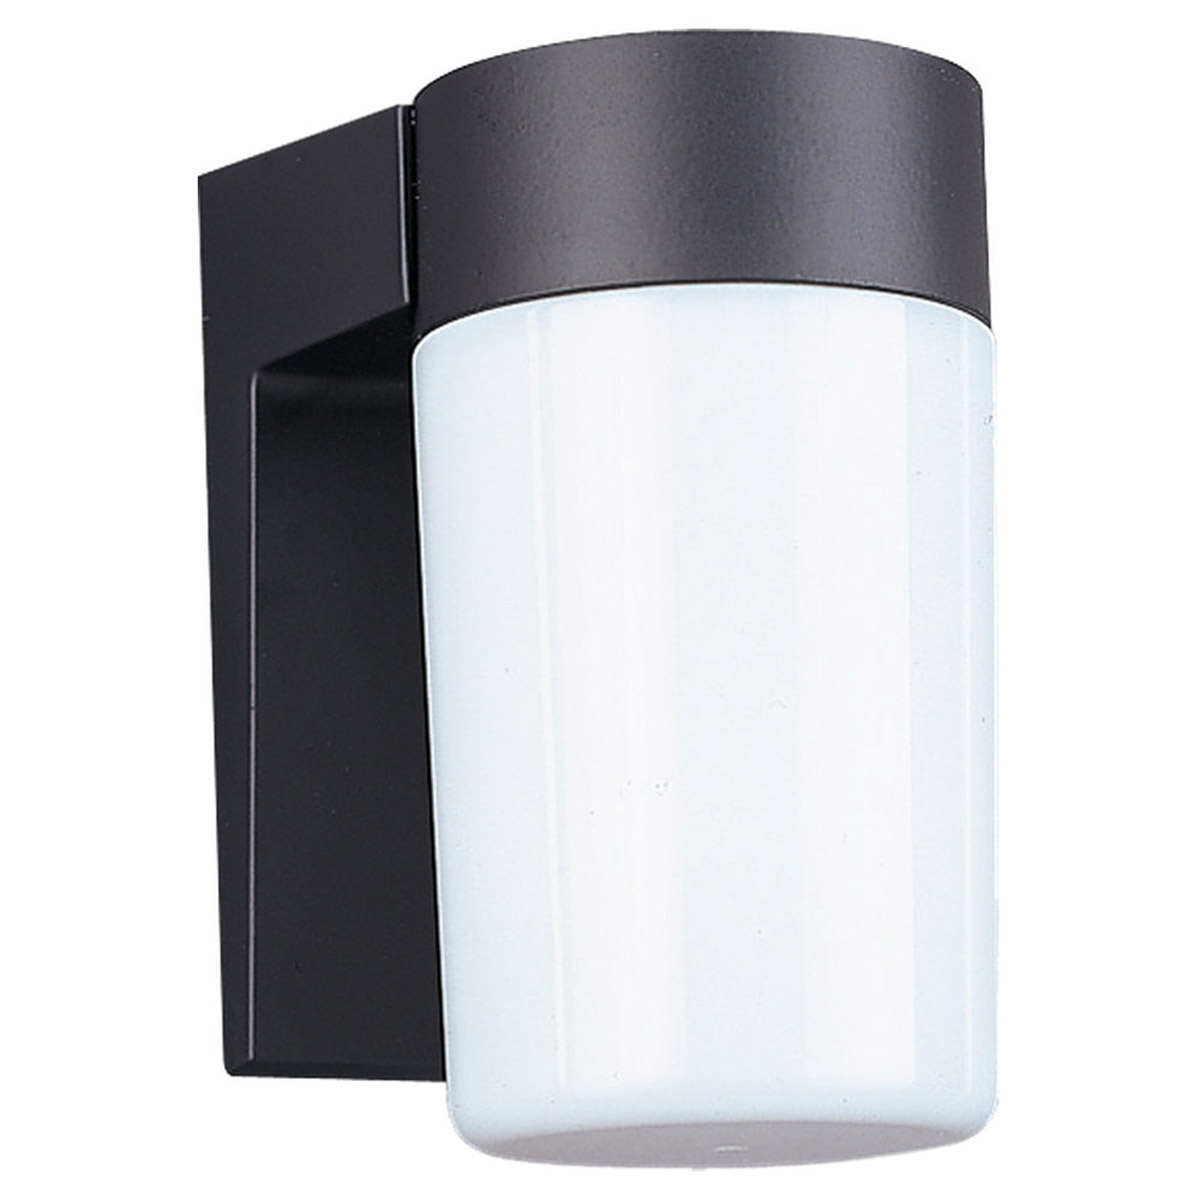 Sea Gull 8301-12 Signature 1 Light 6 inch Black Outdoor Wall Lantern photo